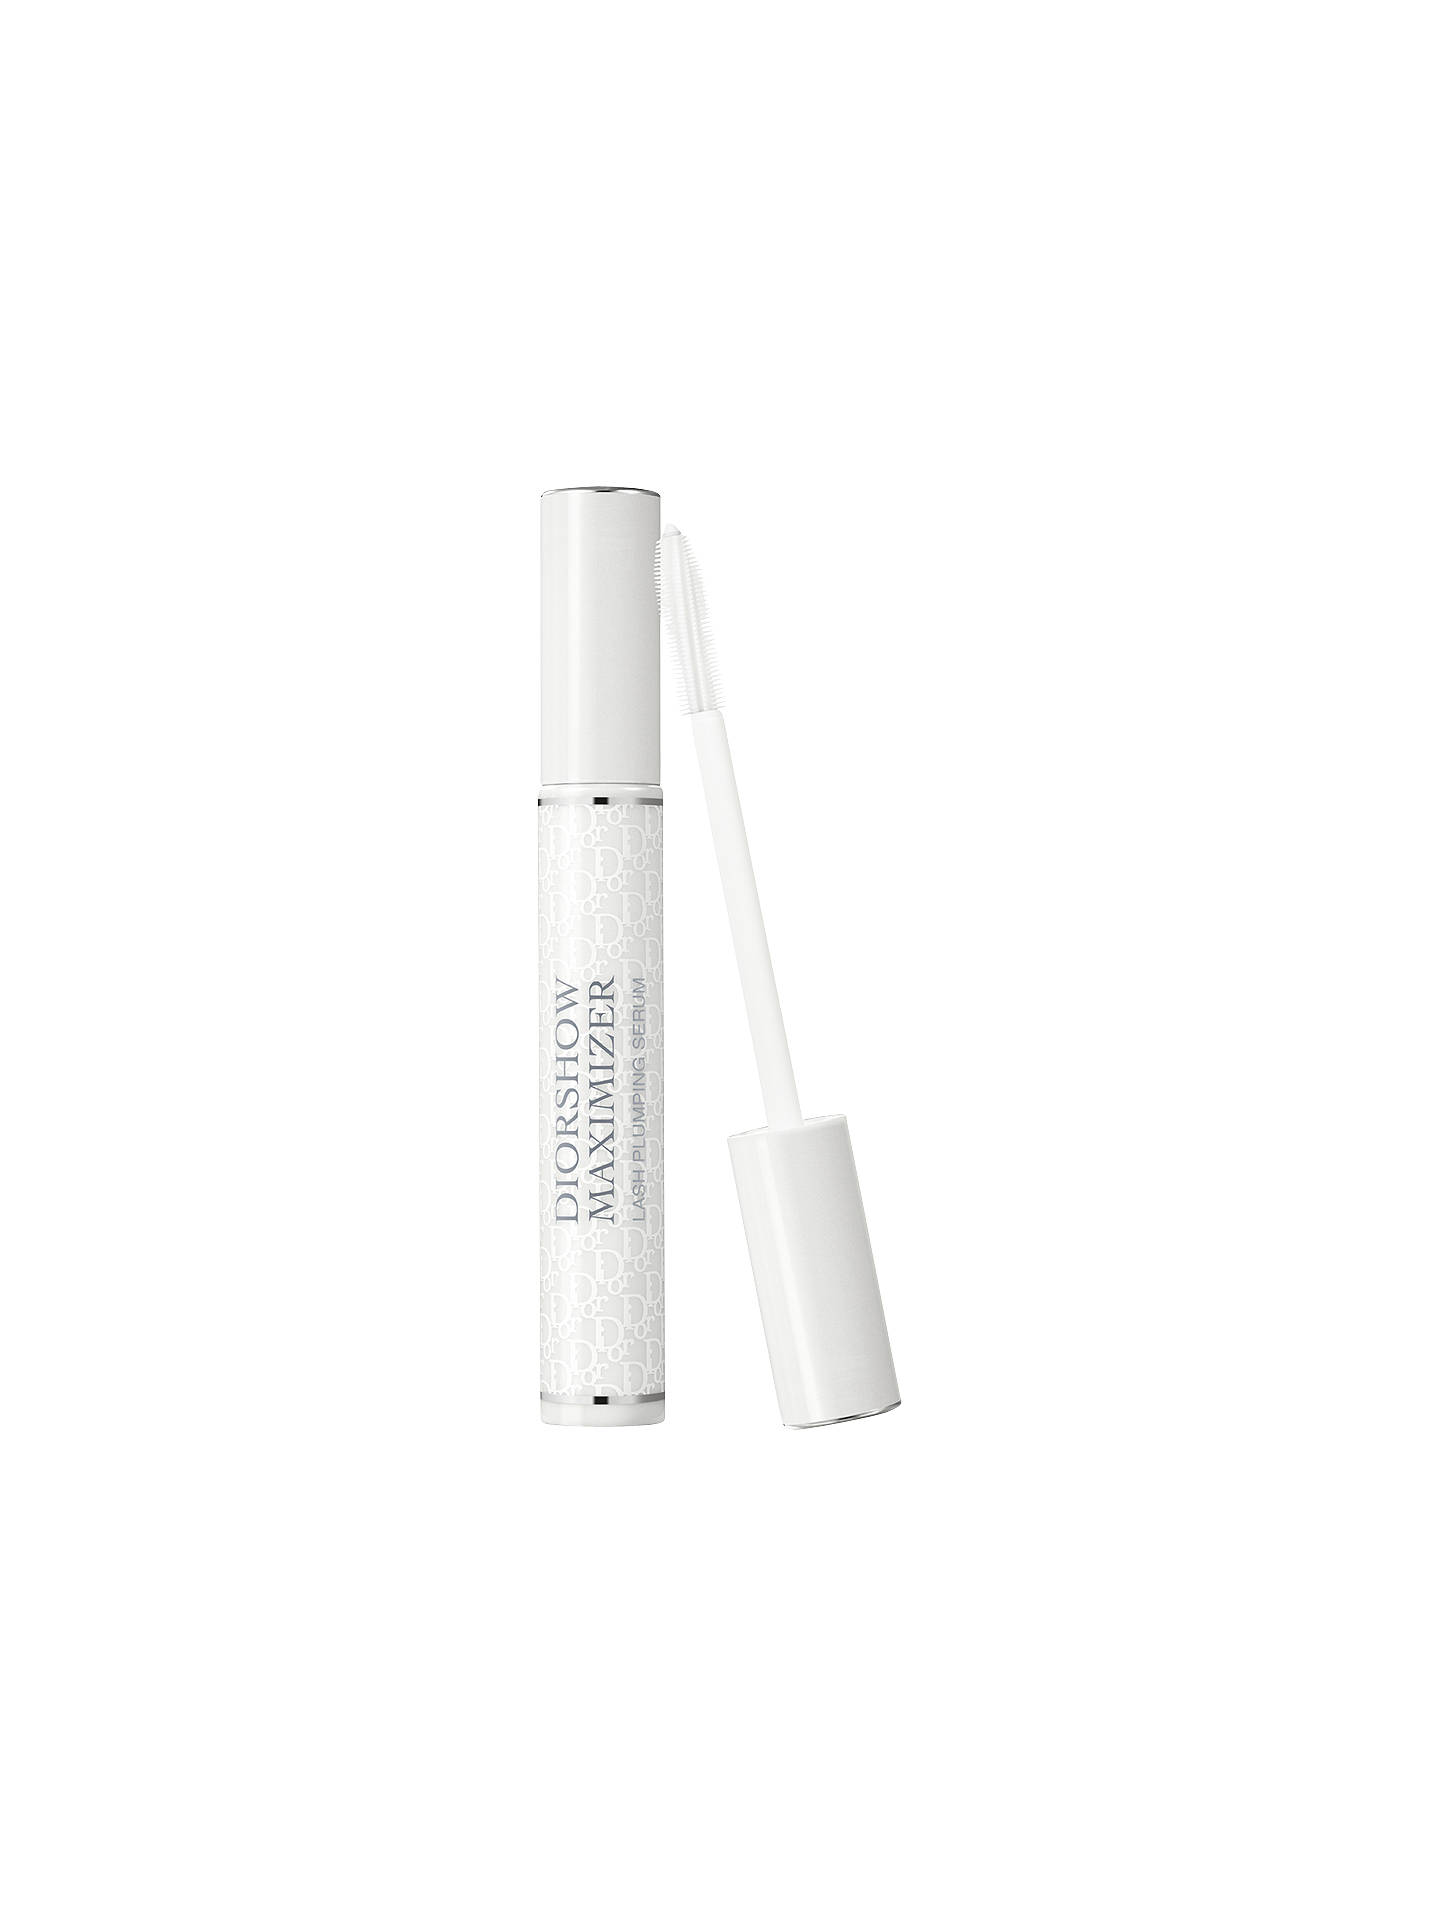 Buy Dior Diorshow Maximizer Lash Plumping Serum, 001 Online at johnlewis.com